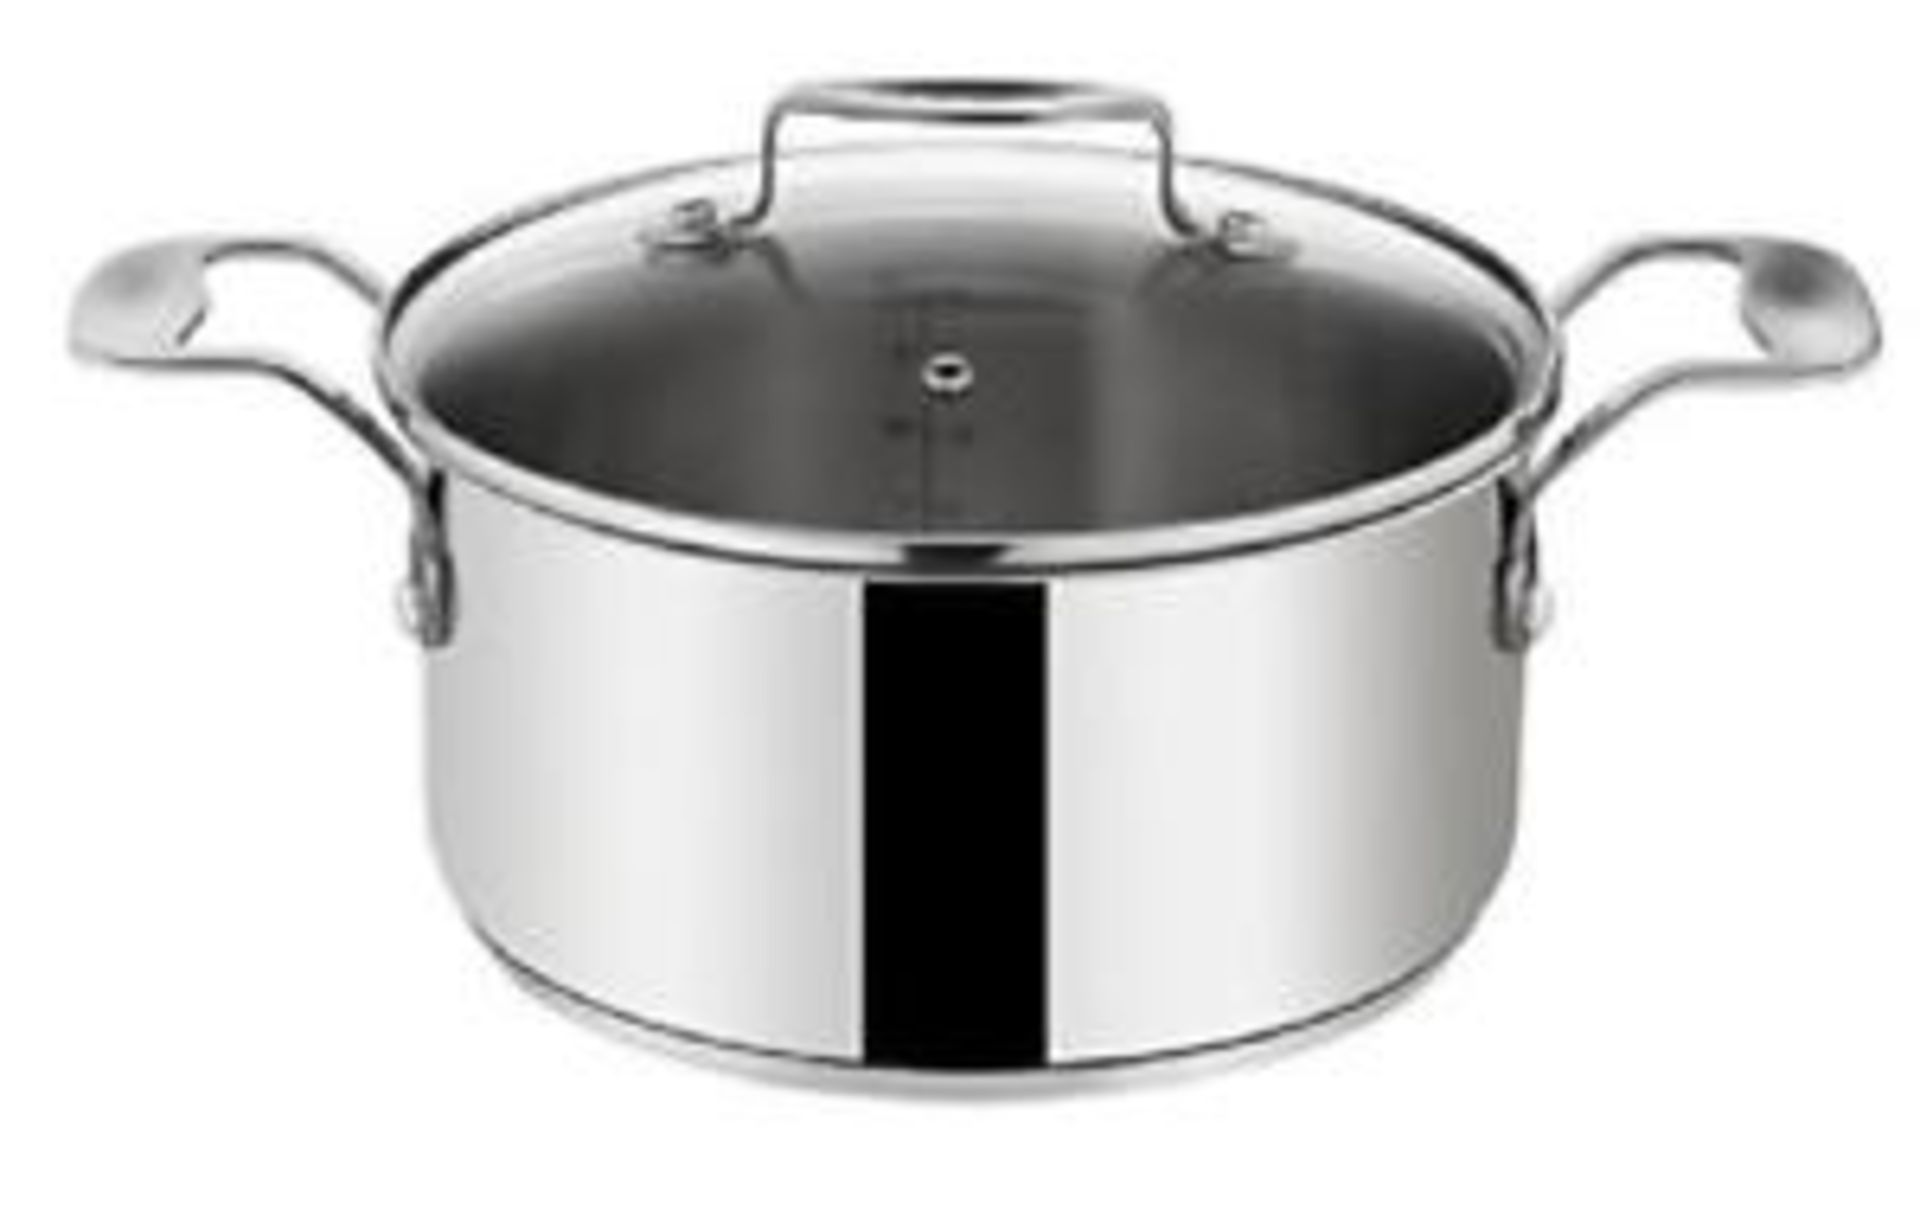 Lot 10192 - V Brand New Tefal Jamie Oliver Professional 6.7 Litre Stainless Steel Induction Cooking Pot With